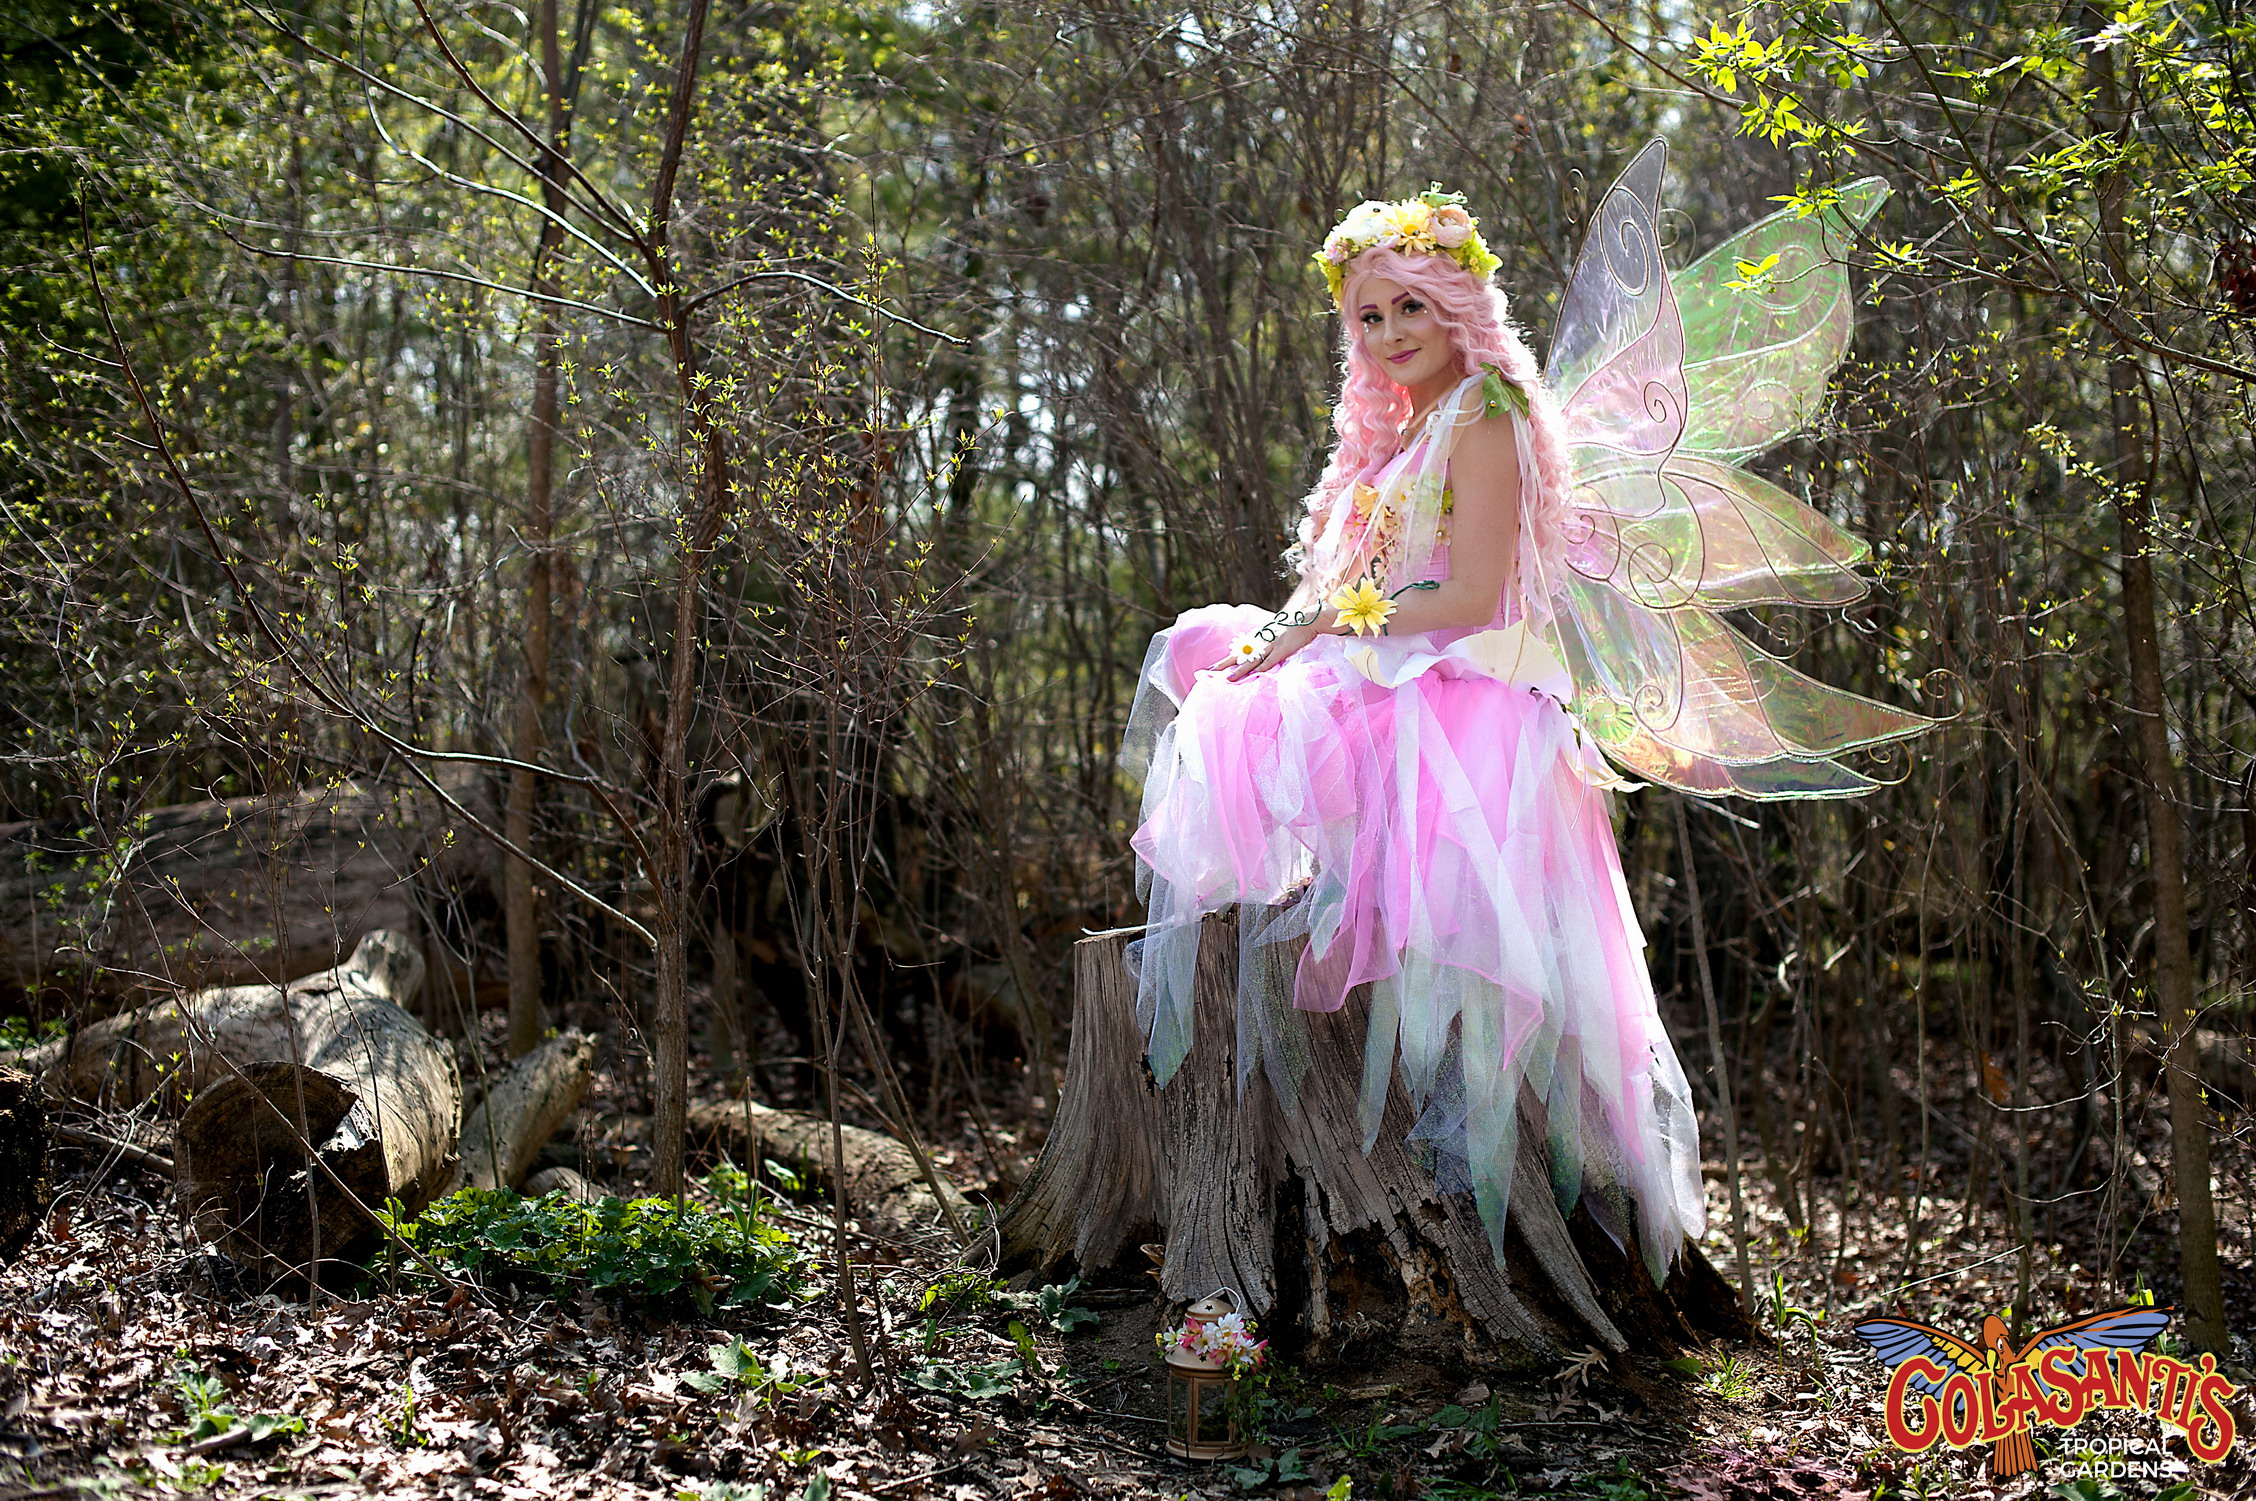 Colasanti's fairy Adventure Day